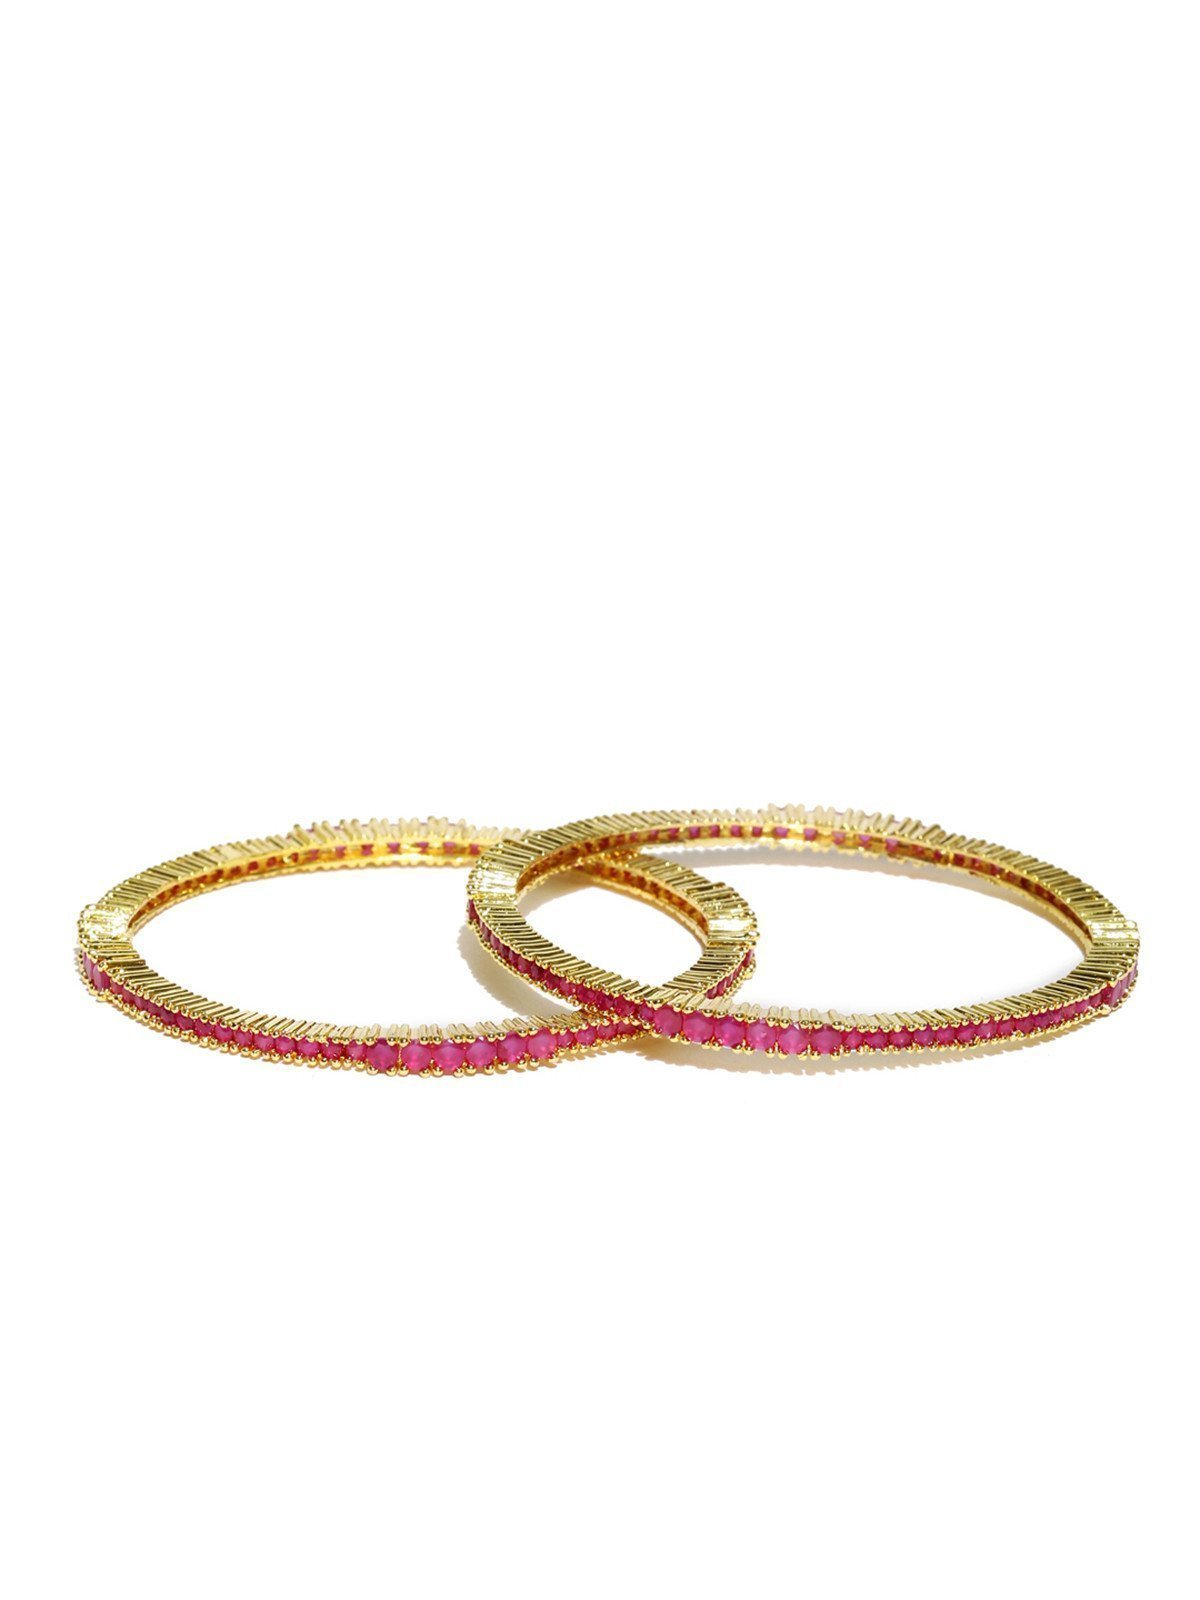 Set Of 2 Splendid Cubic Zirconia Bangles